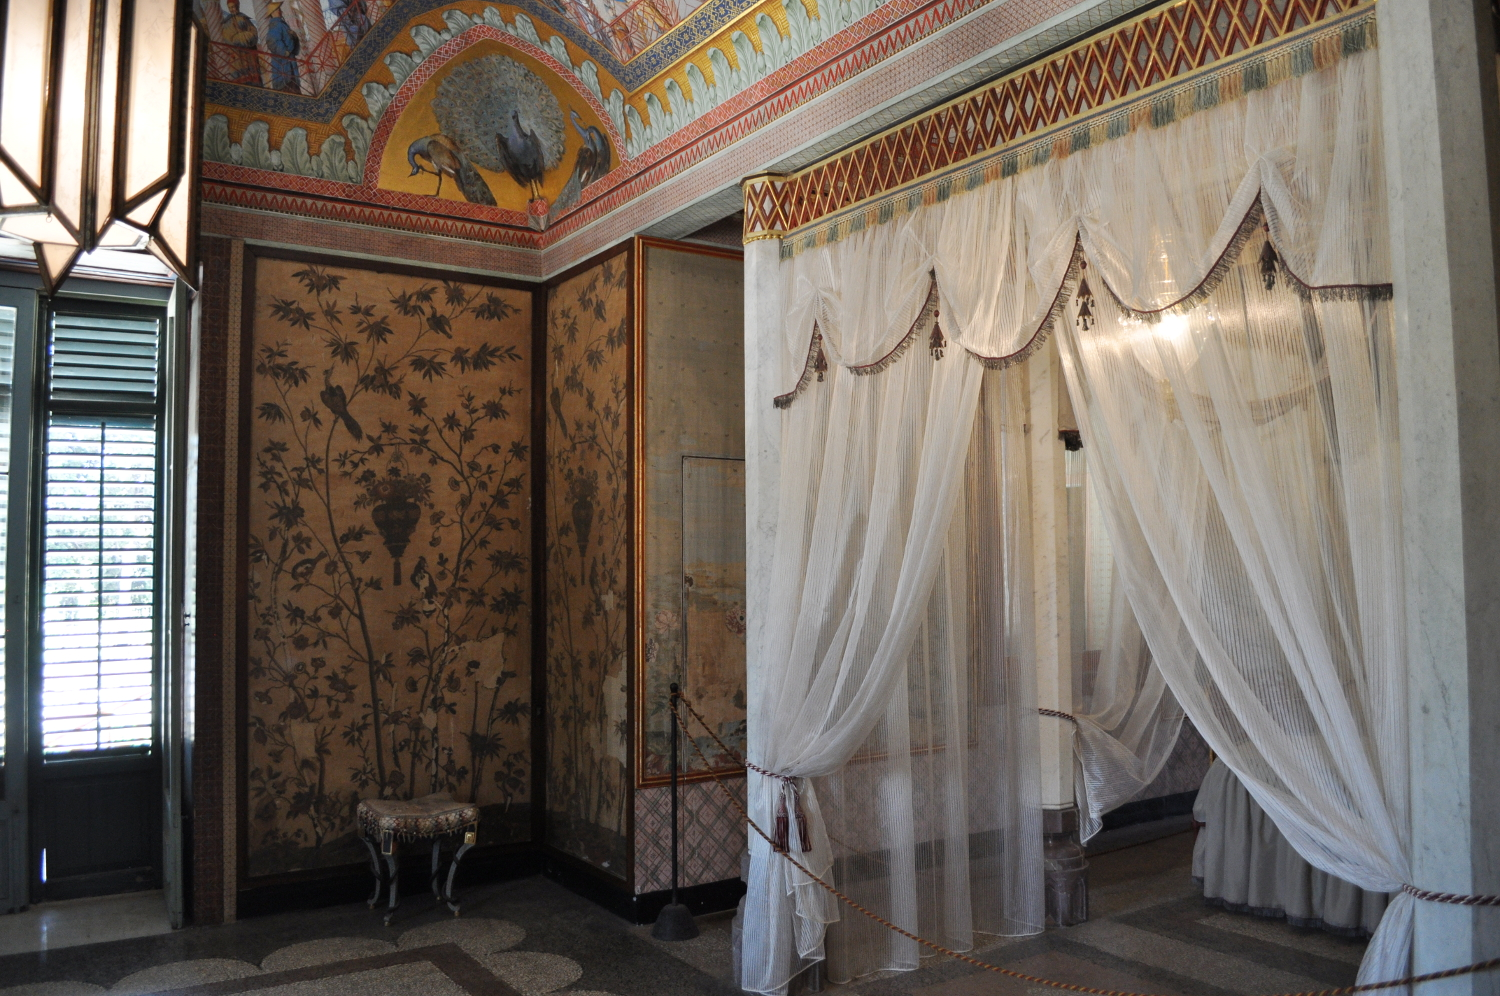 rocaille-blog-palazzina-cinese-palermo-44